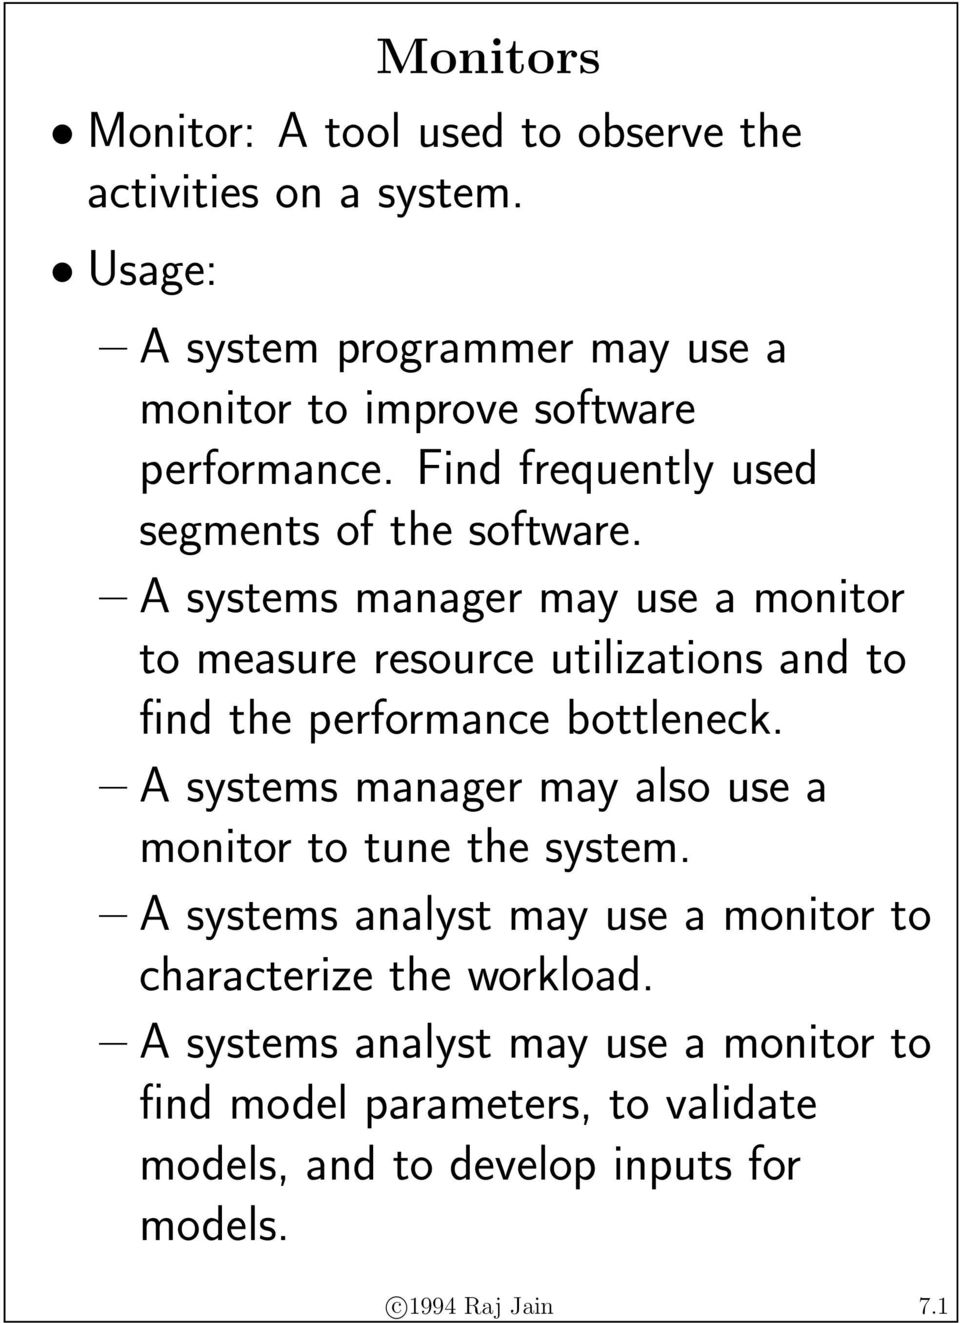 A systems manager may use a monitor to measure resource utilizations and to find the performance bottleneck.